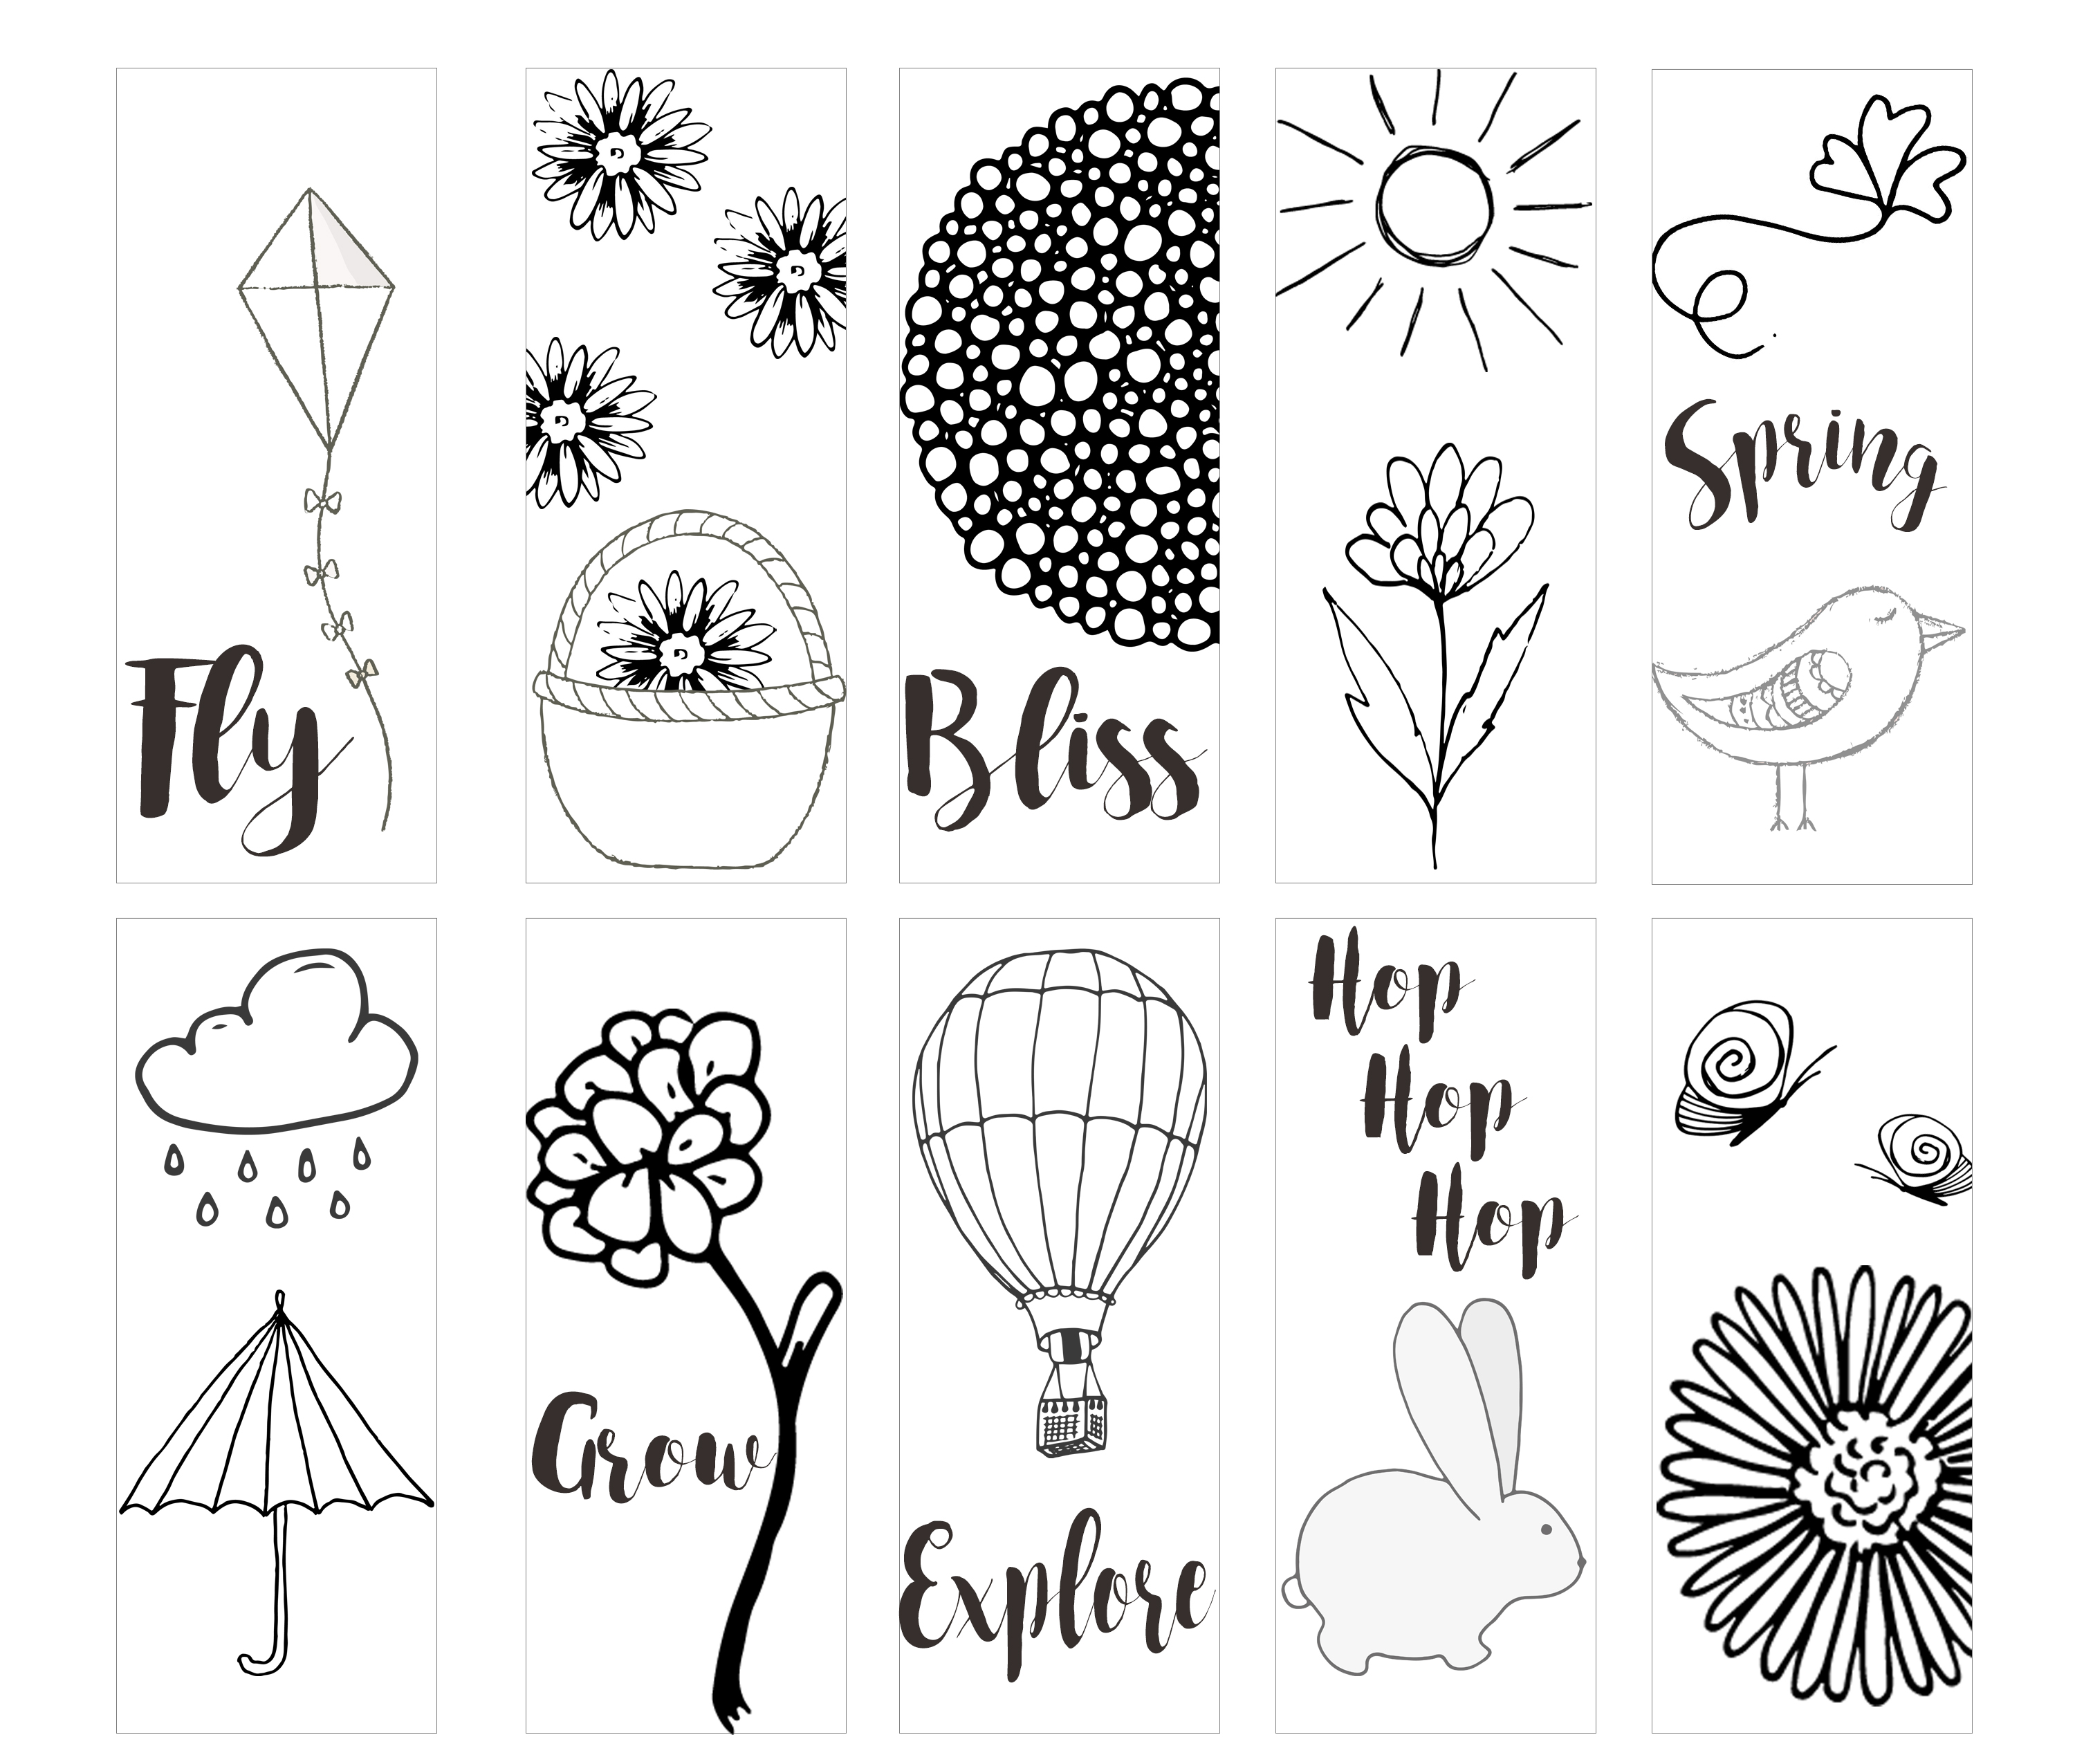 Printable coloring pages for spring - Download Spring Printable Coloring Page Bookmarks Here